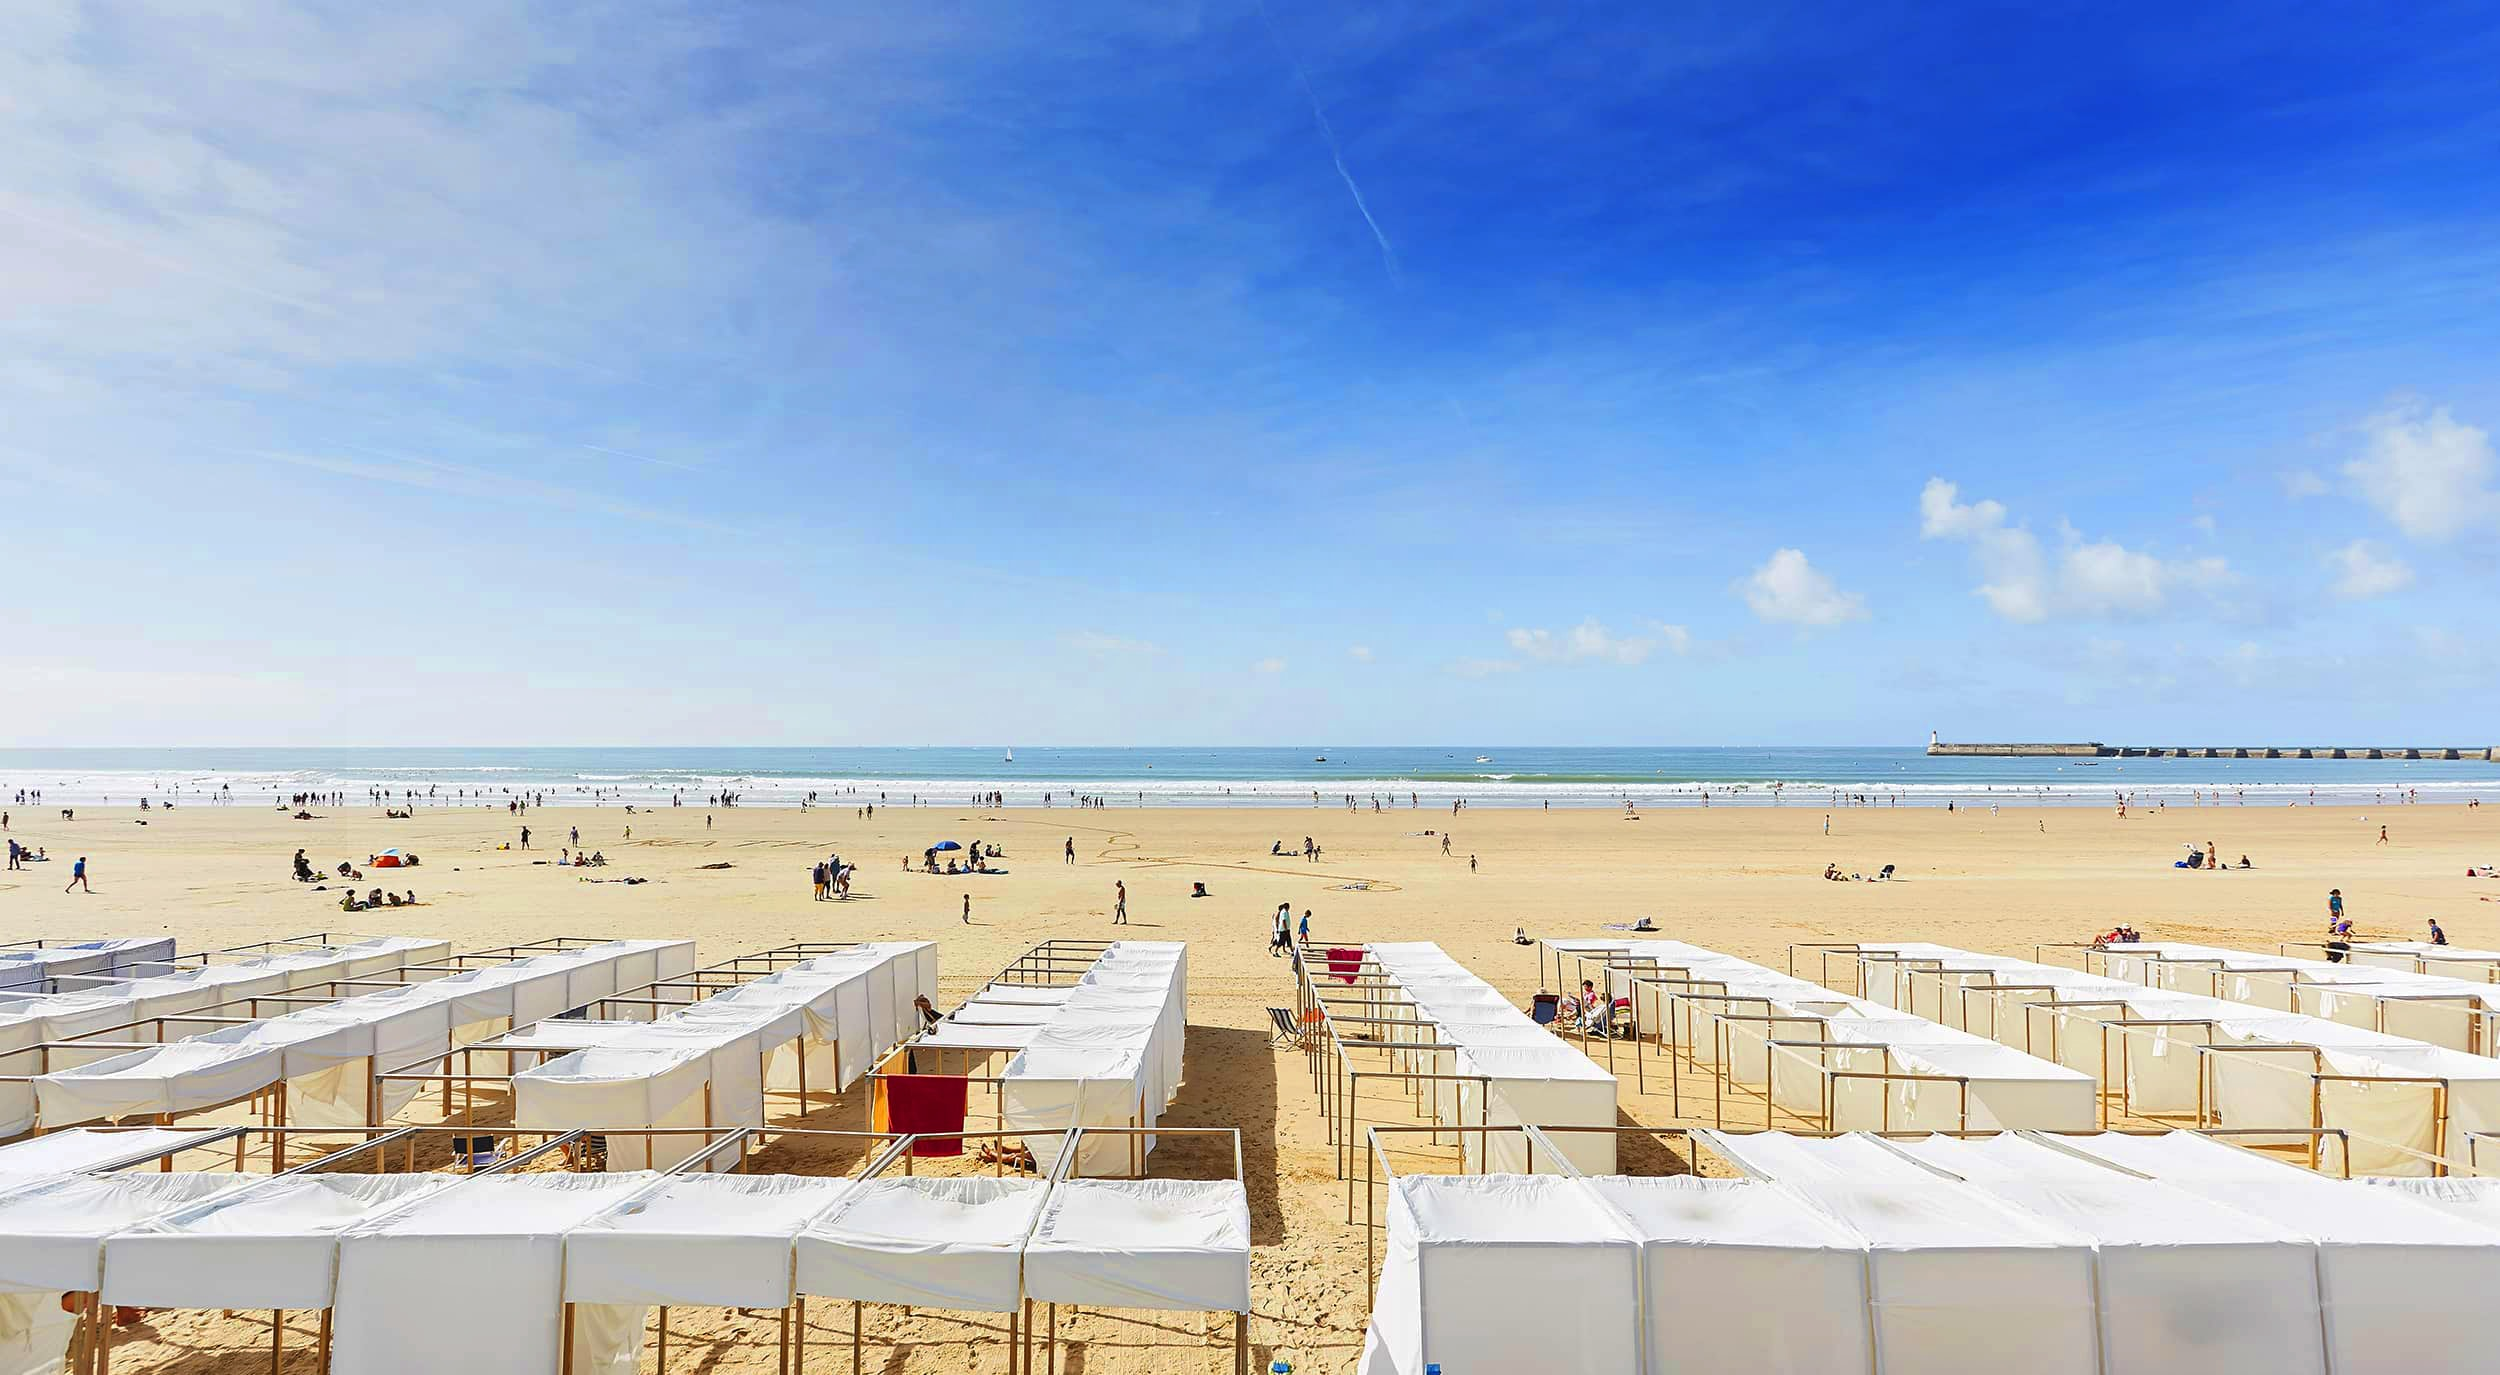 Copyright_A.Lamoureux_Vendee_Expansion_Les_Sables_d_Olonne_9